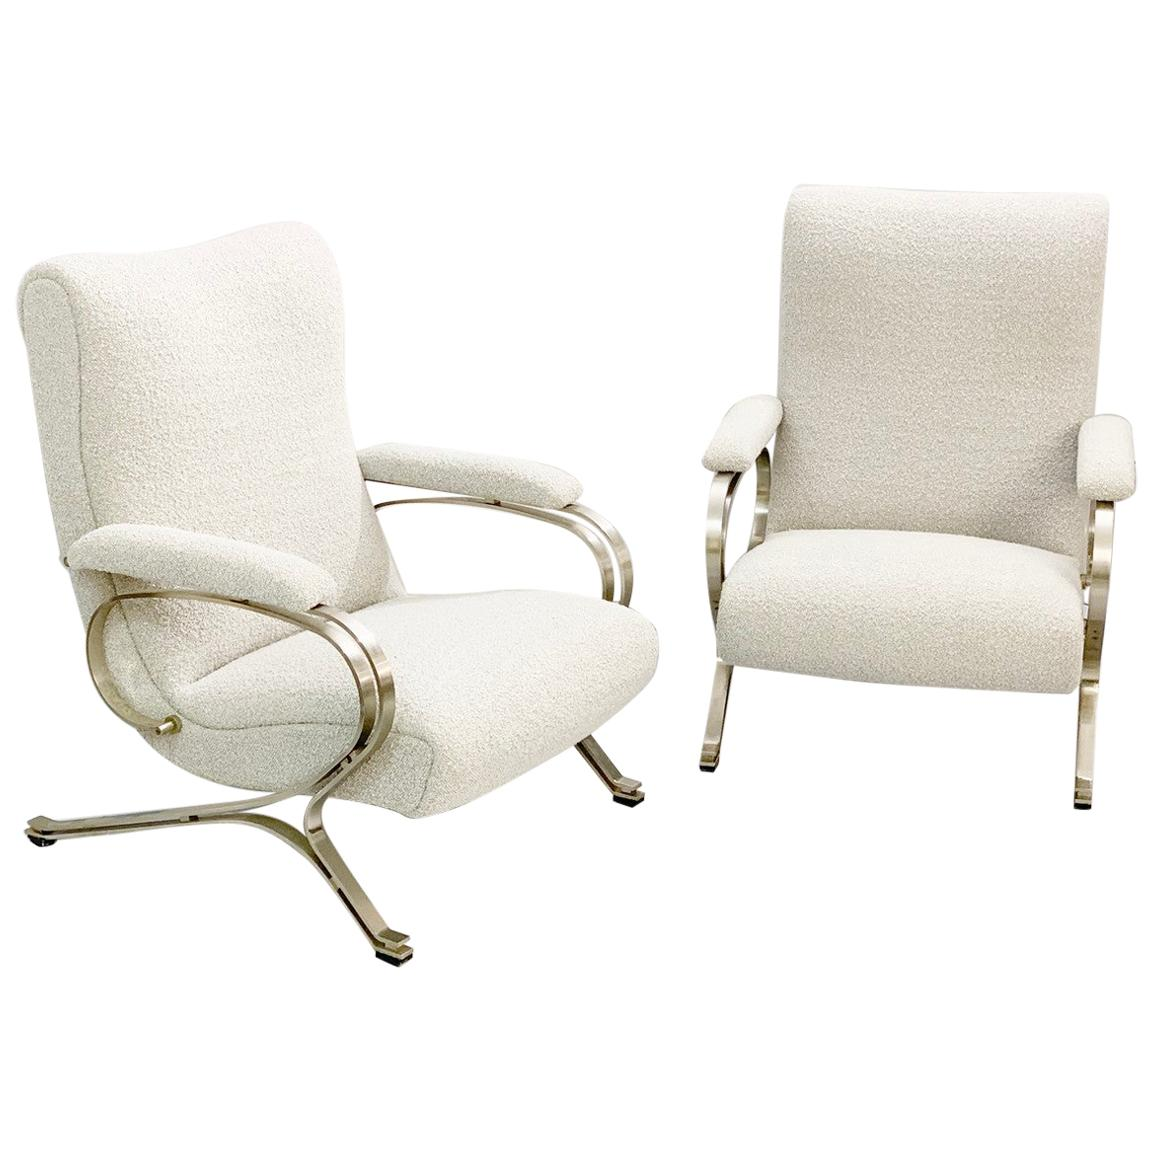 """Pair of """"Micaela"""" Armchairs by Gianni Moscatelli, Formanova, 1970s"""